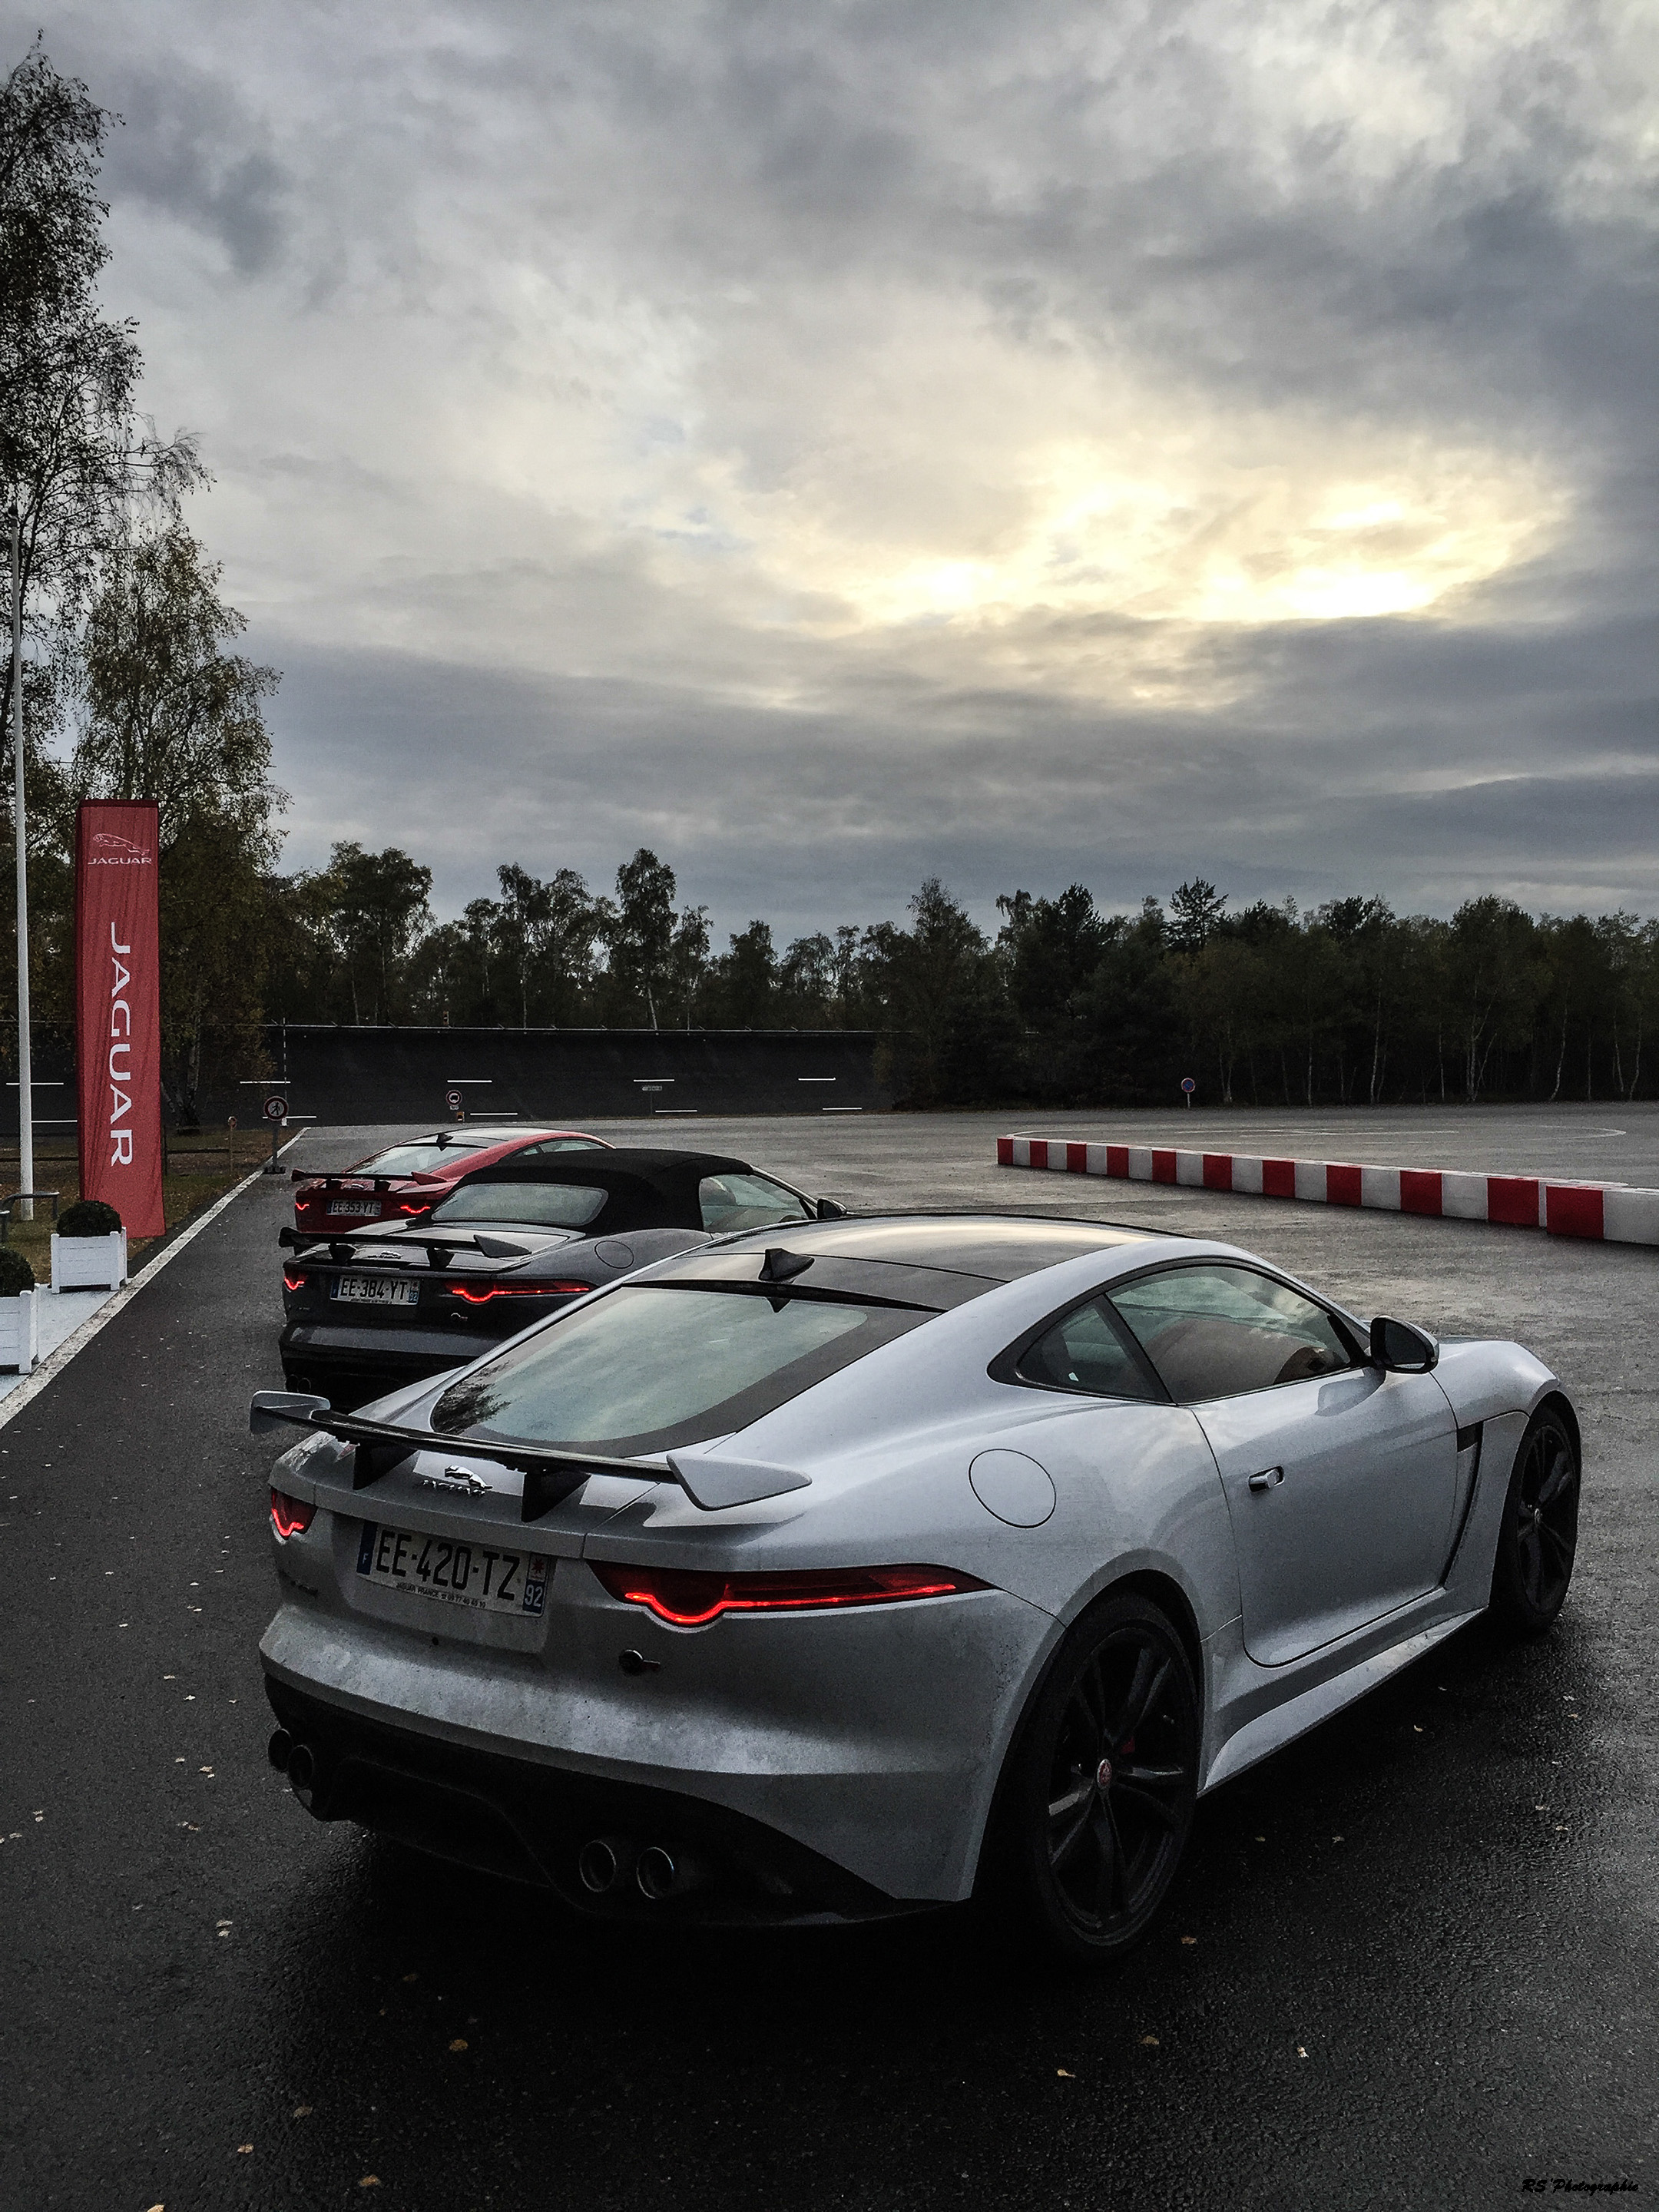 Jaguar F-Type SVR - arrière / rear - photo Arnaud Demasier - RS Photographie